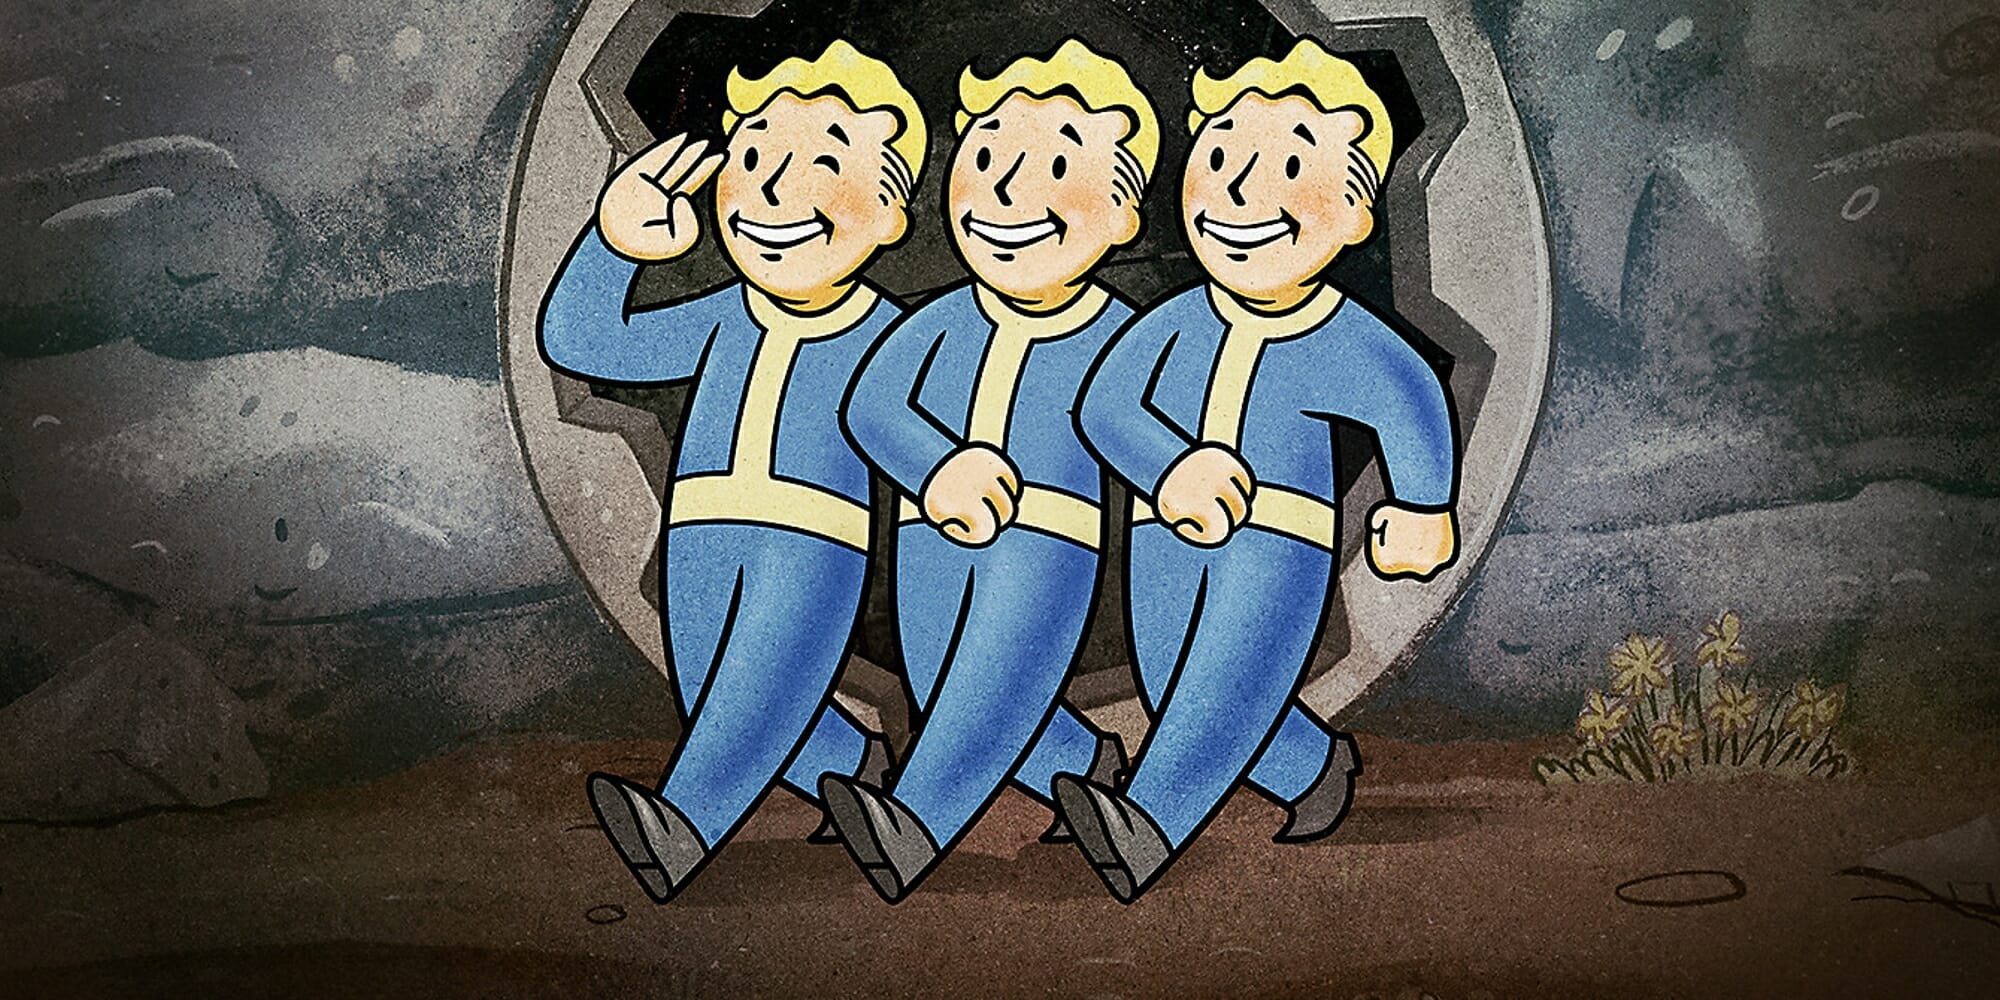 Fallout 76 Finally Scores a Win After Purging Duplicate